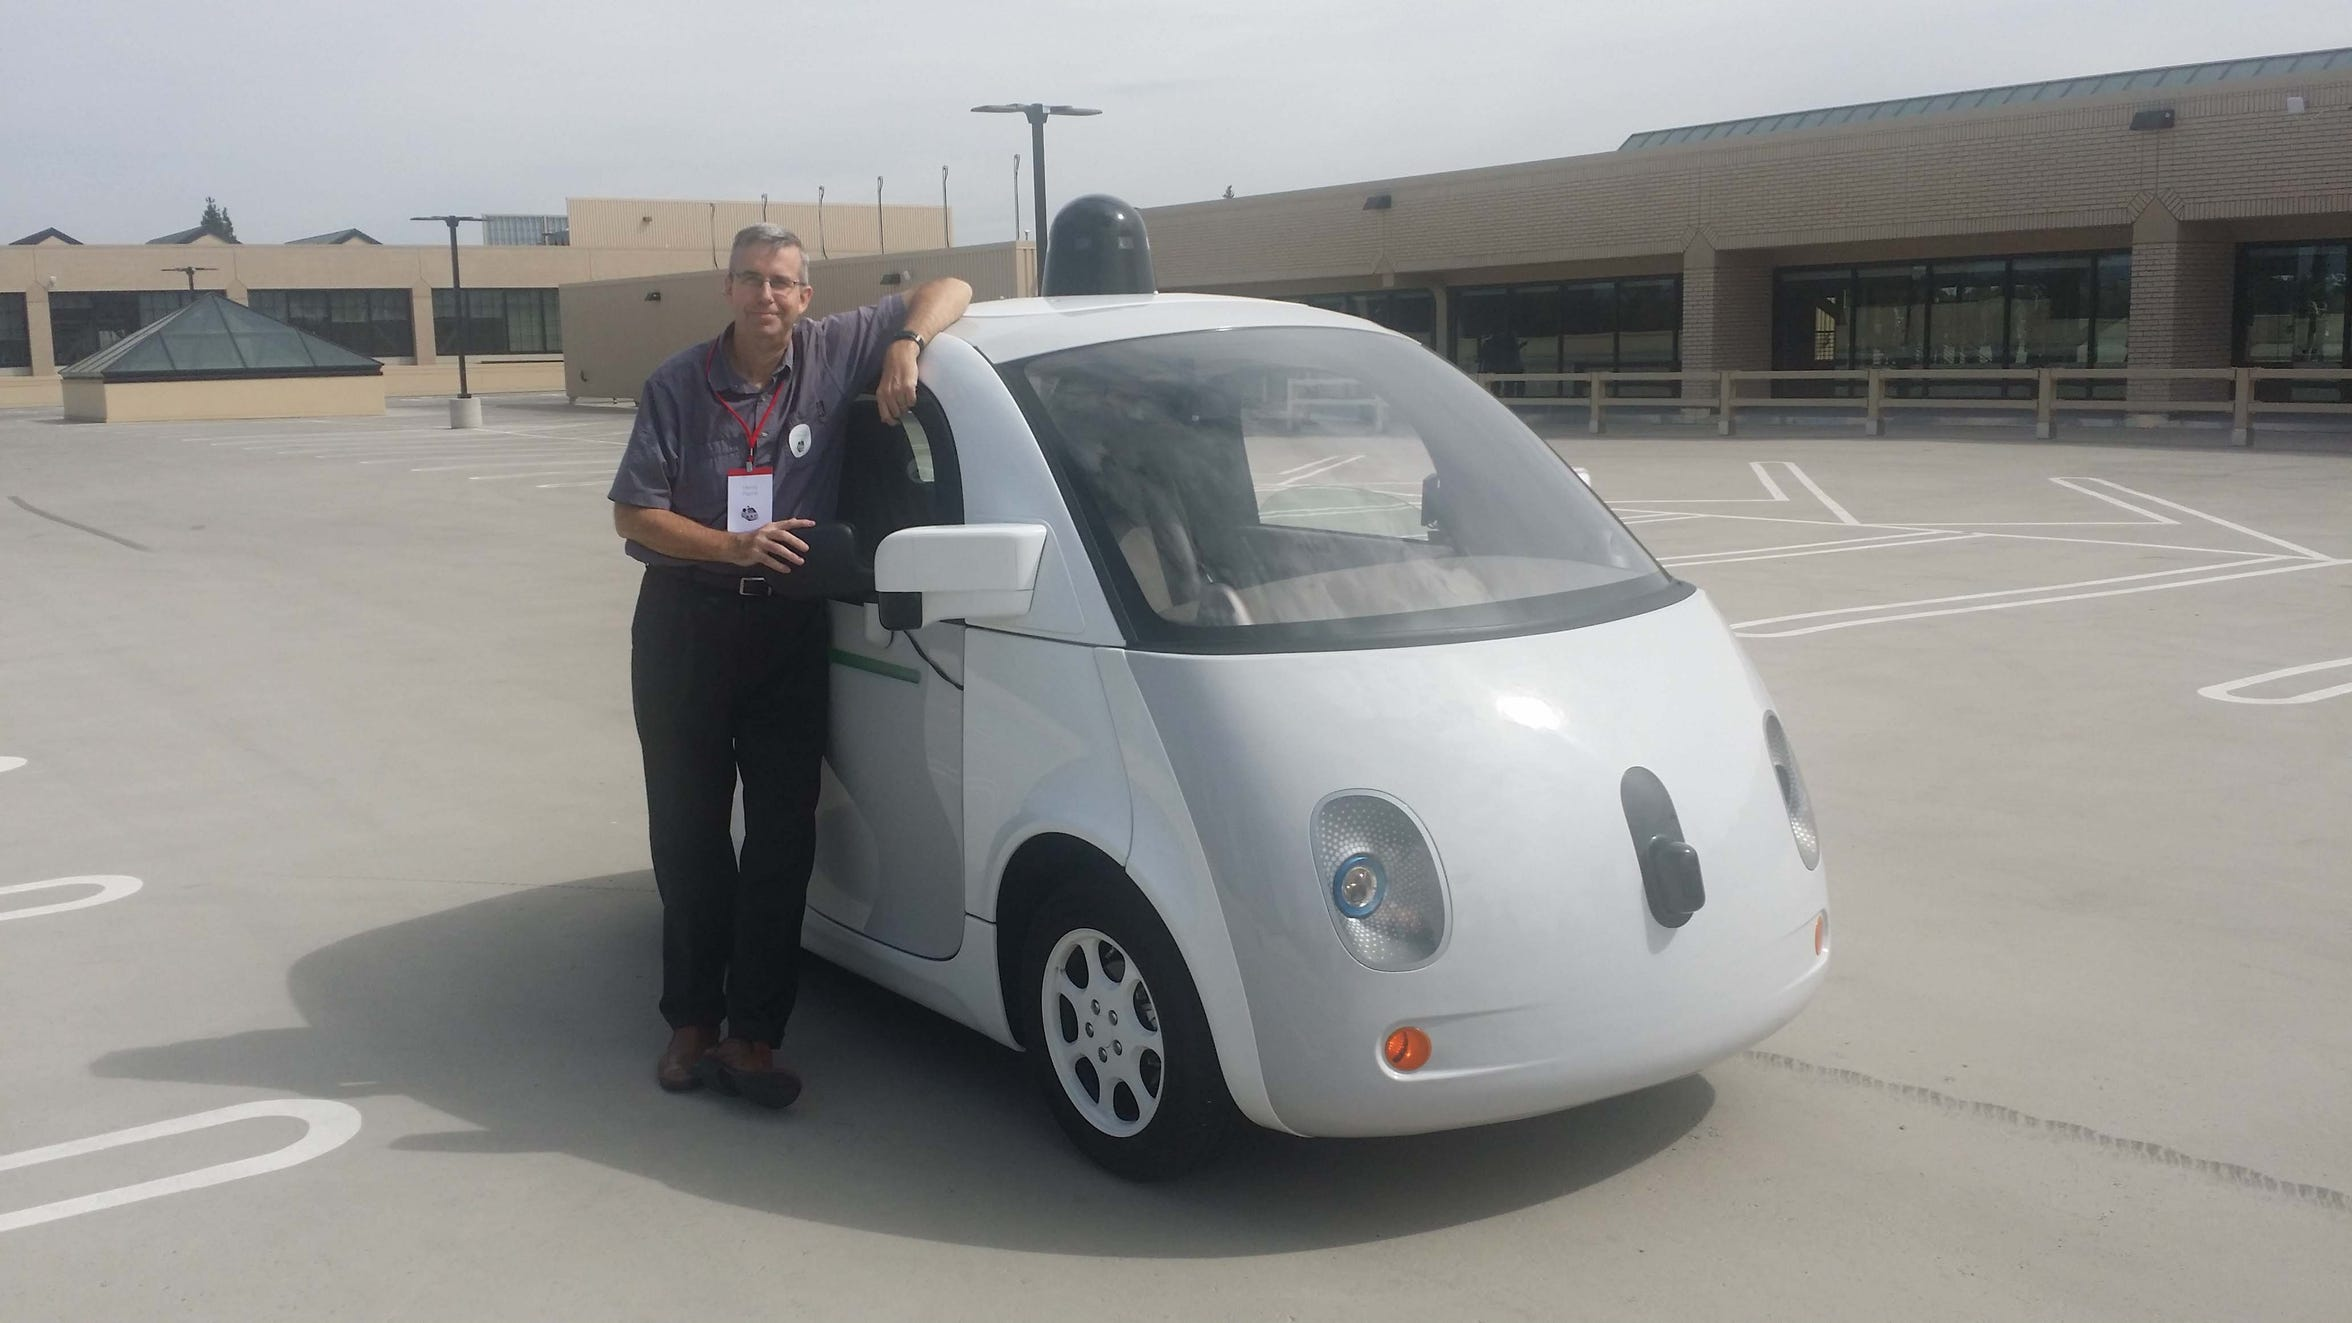 "The ""Skynet Marshmallow Bumper Bot"" (as the Oatmeal.com website called it) announced Silicon Valley as a mobility leader. Self-driving cars suddenly seemed within reach. Without a steering wheel, the Livonia-built Google car felt like riding in a four-wheel subway car. The pioneering robot plied city streets in San Francisco and Austin for a time before giving way to more practical people-movers like Waymo (Google) minivans, Uber Volvos and Cruise Automation Chevy Bolts."